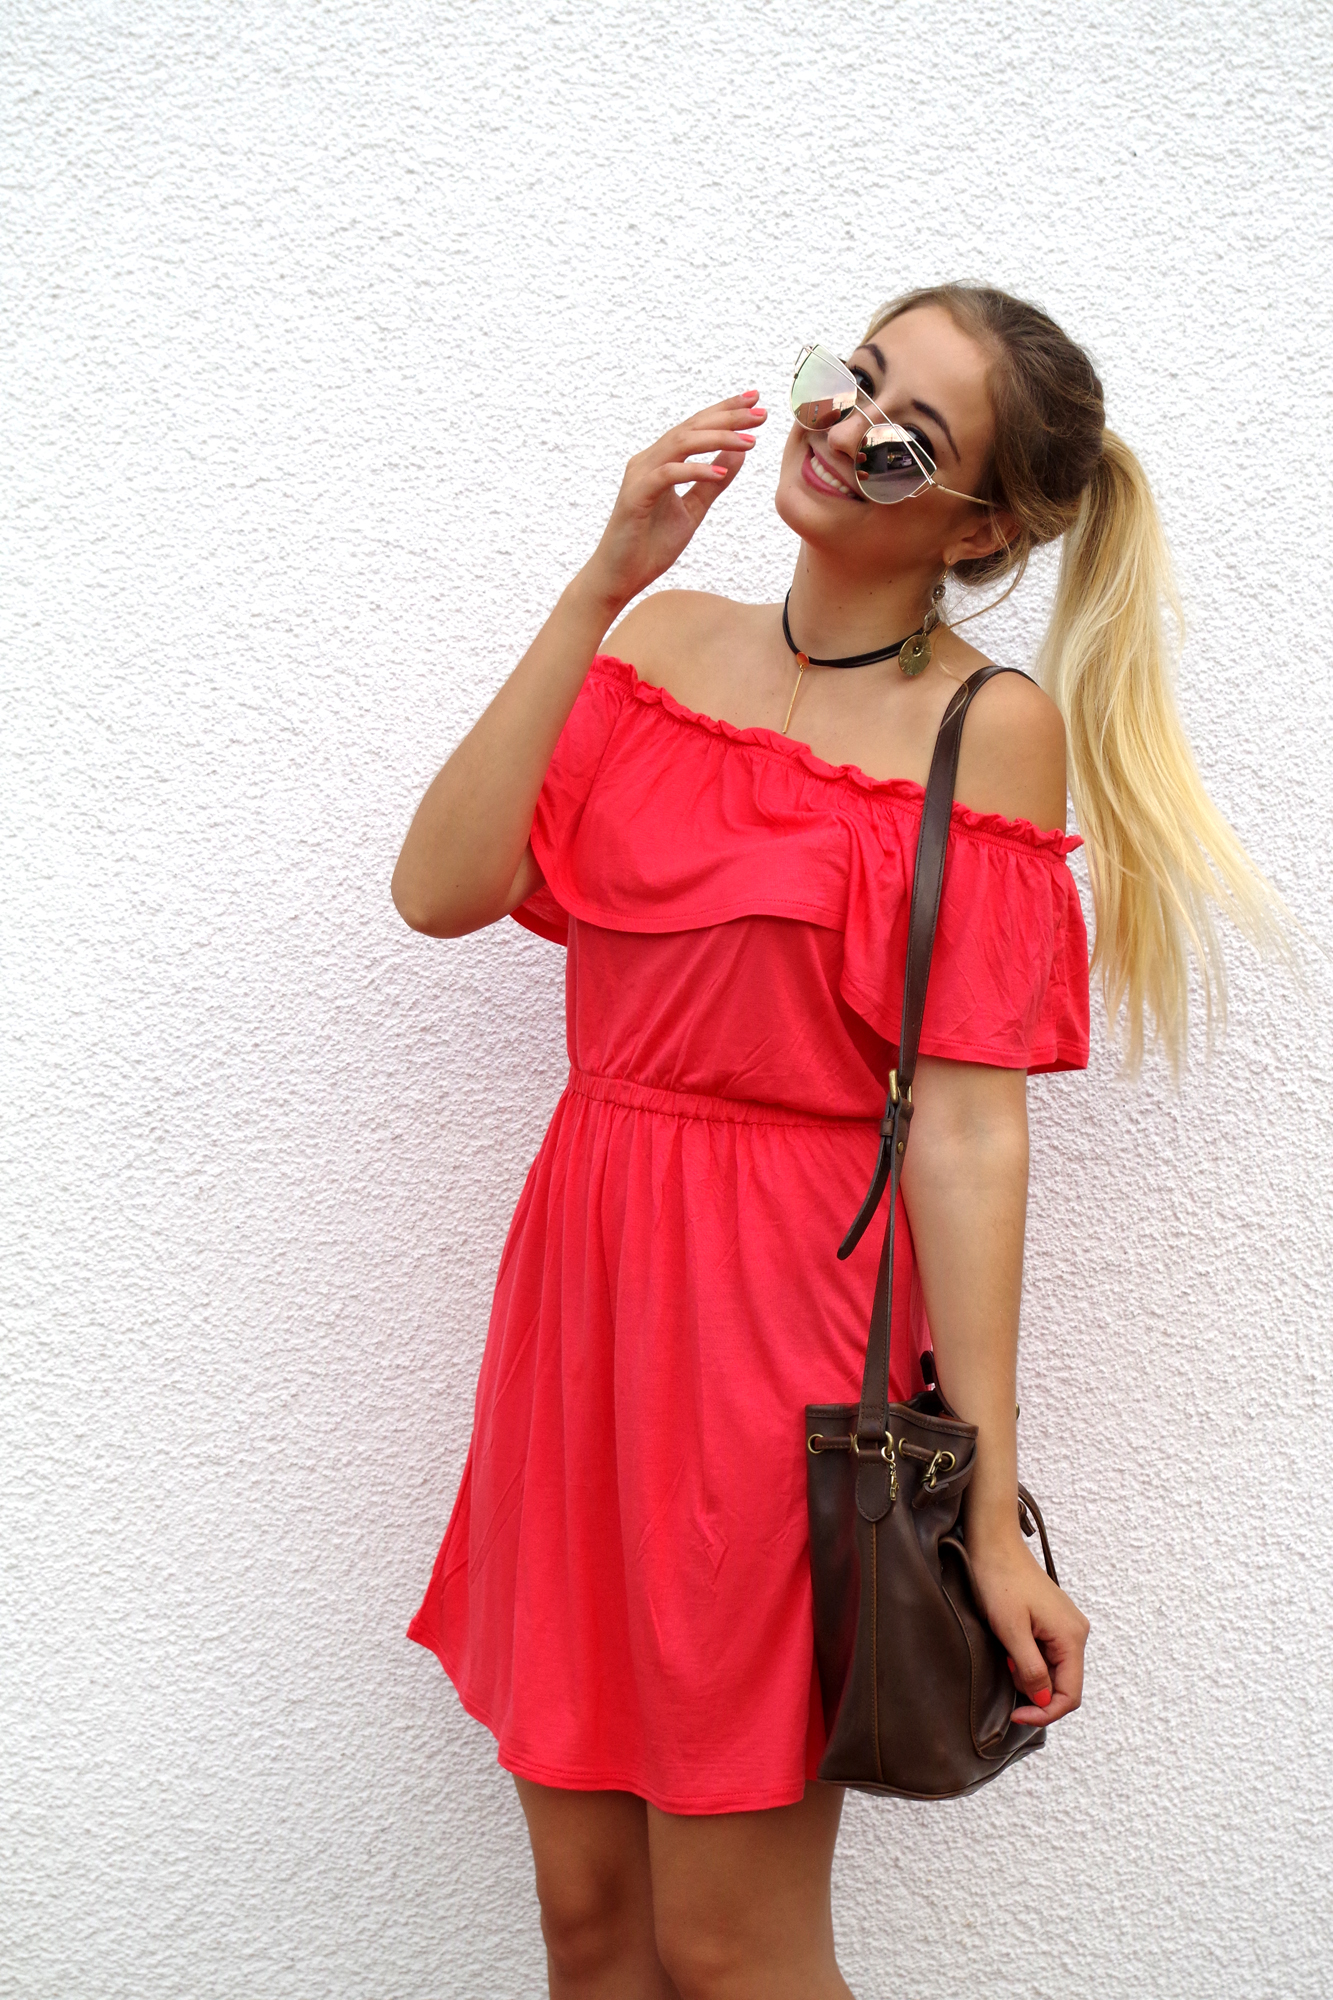 Off-Shoulder-korallrot-Kleid-Fleurrly-Outfit.jpg